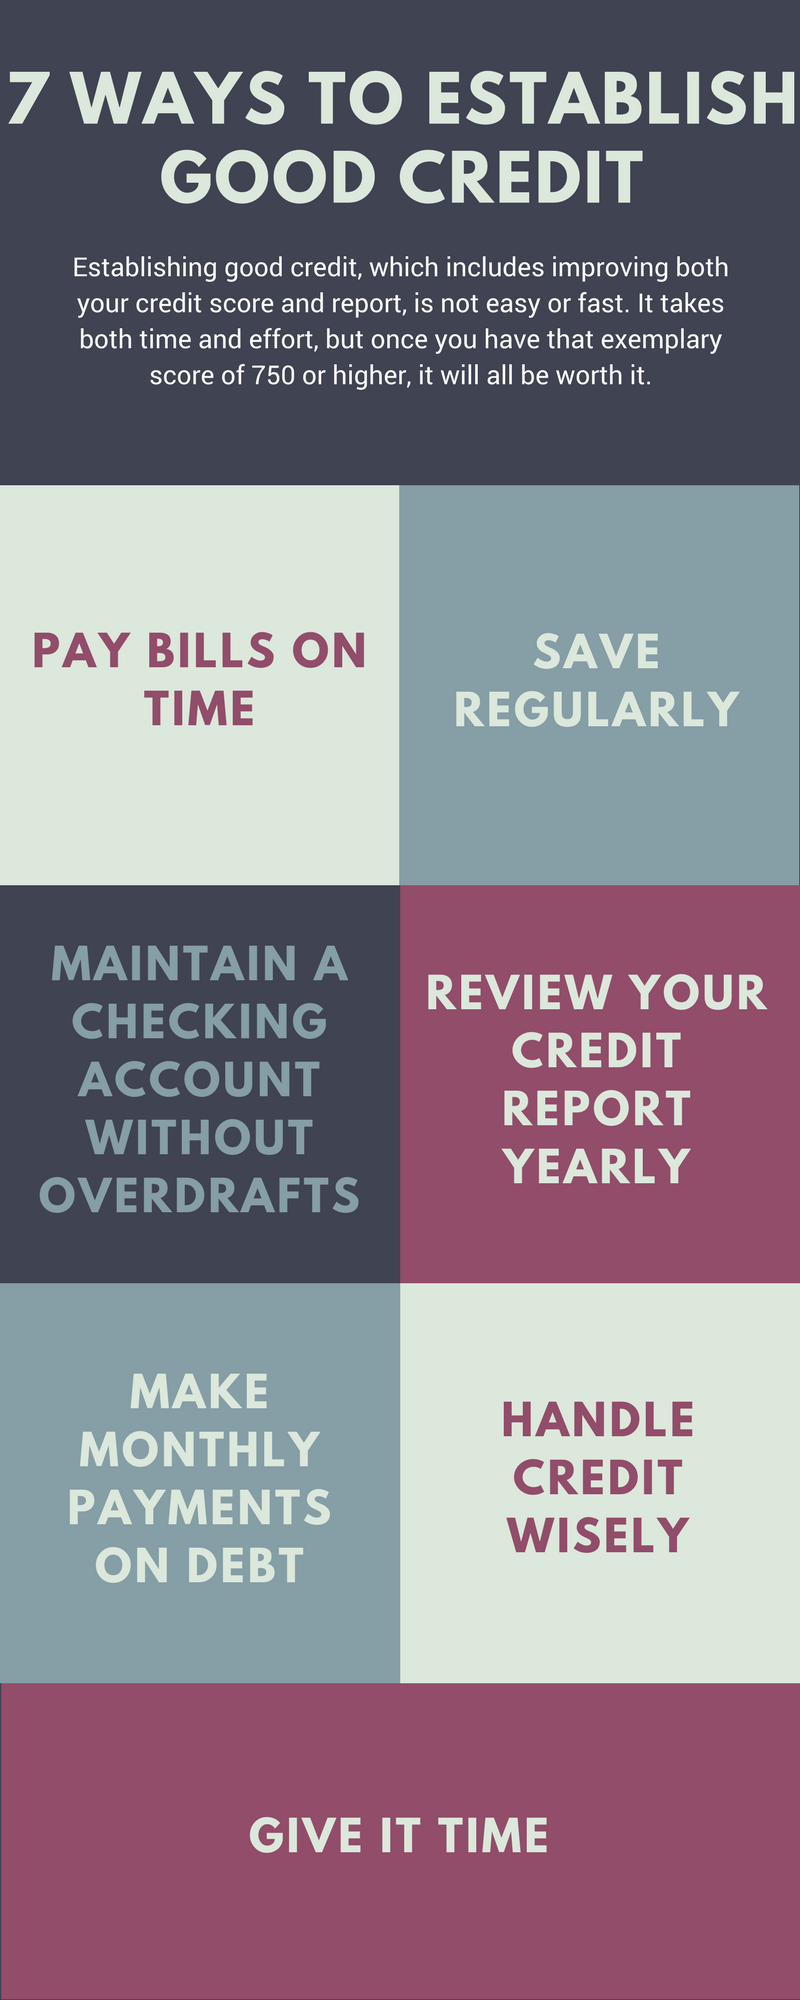 7 ways to establish good credit infographic.png